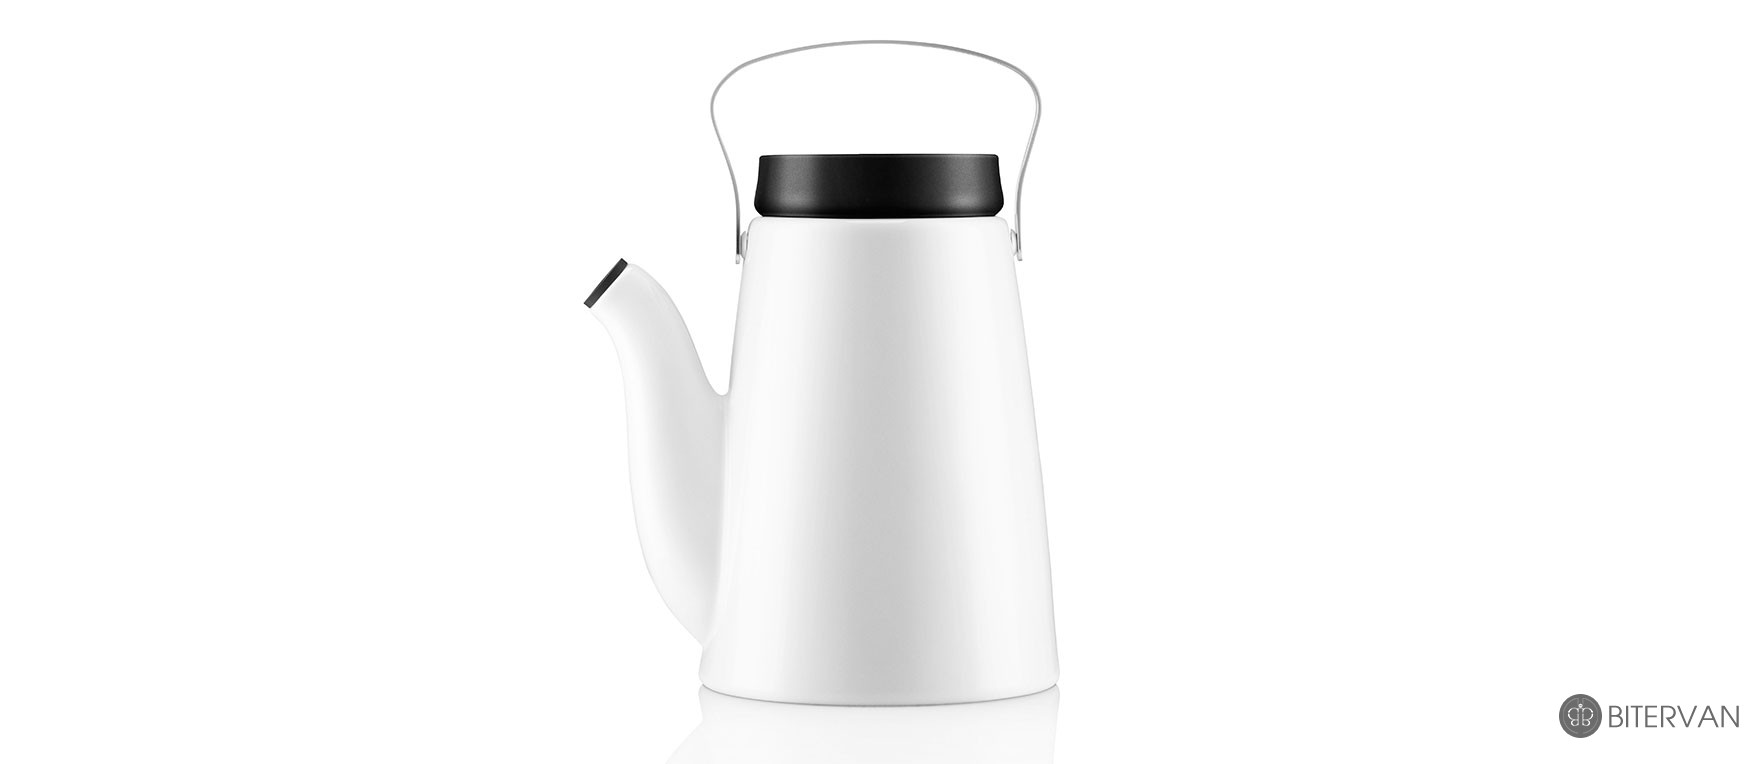 eva solo, Madam solo coffee maker, white,1.2 l